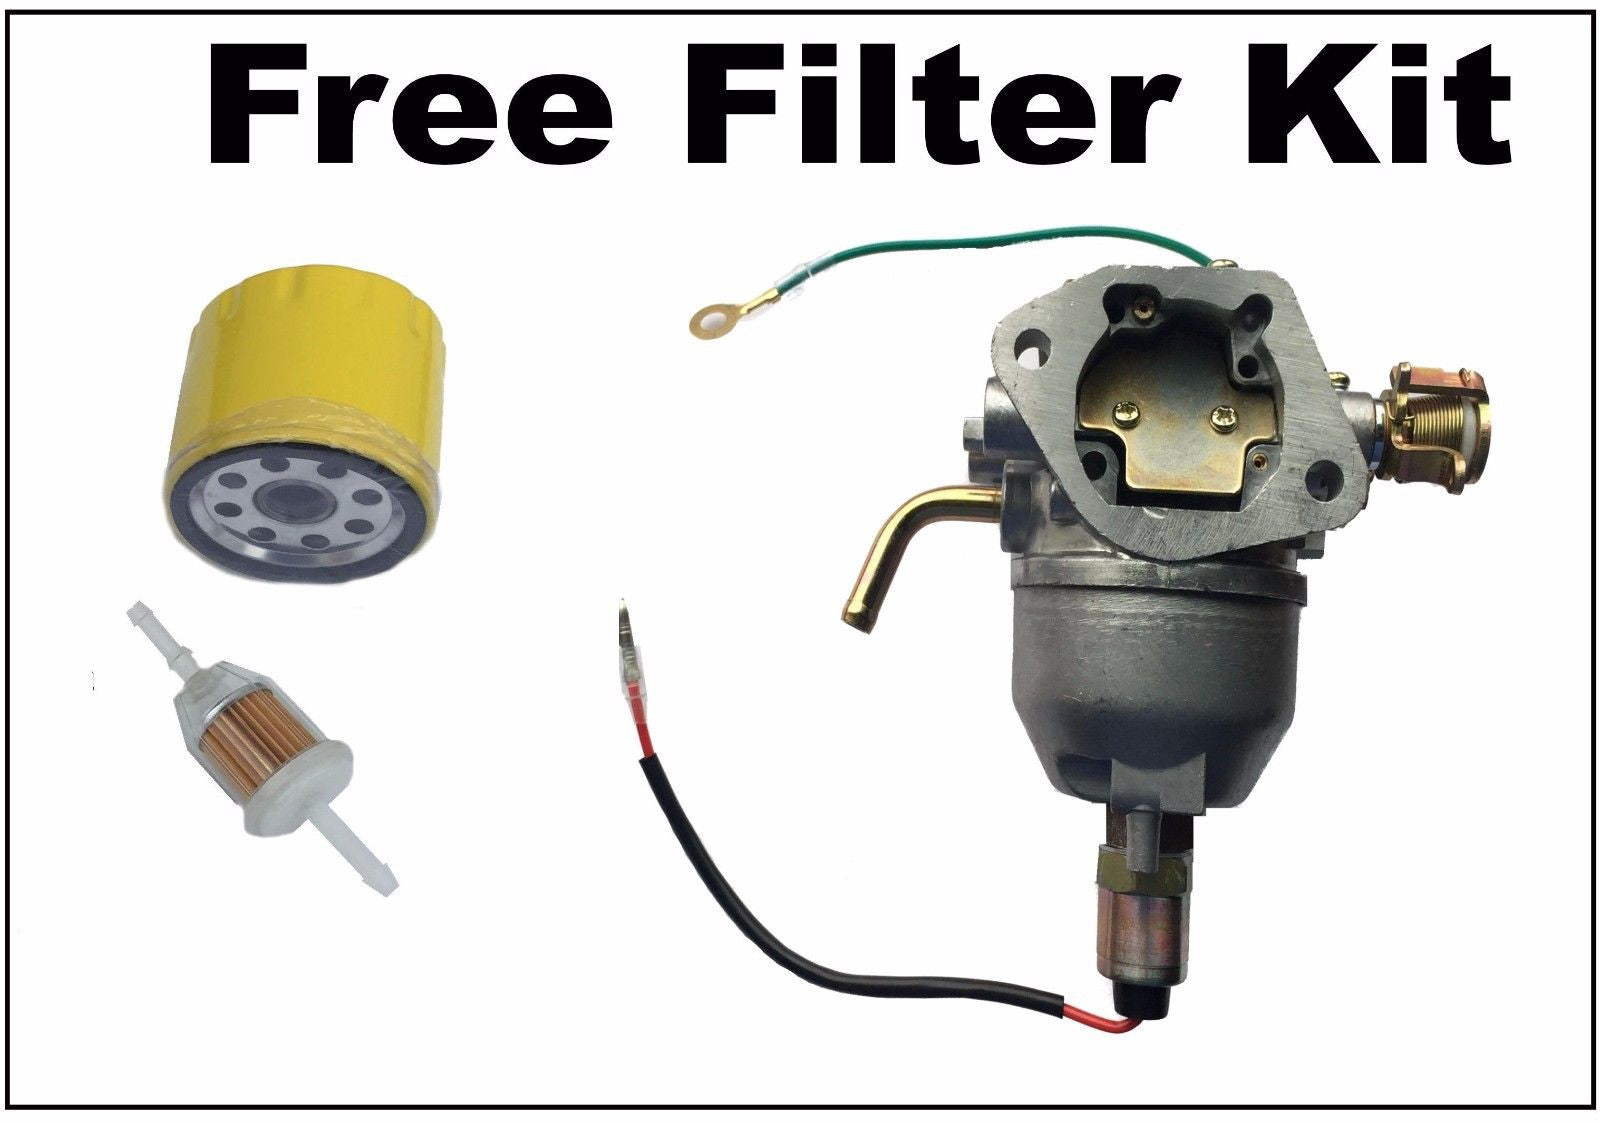 Carburetor Fits Kohler Engines 2405350-S 2485350-S With Free Filter Kit - AE-Power